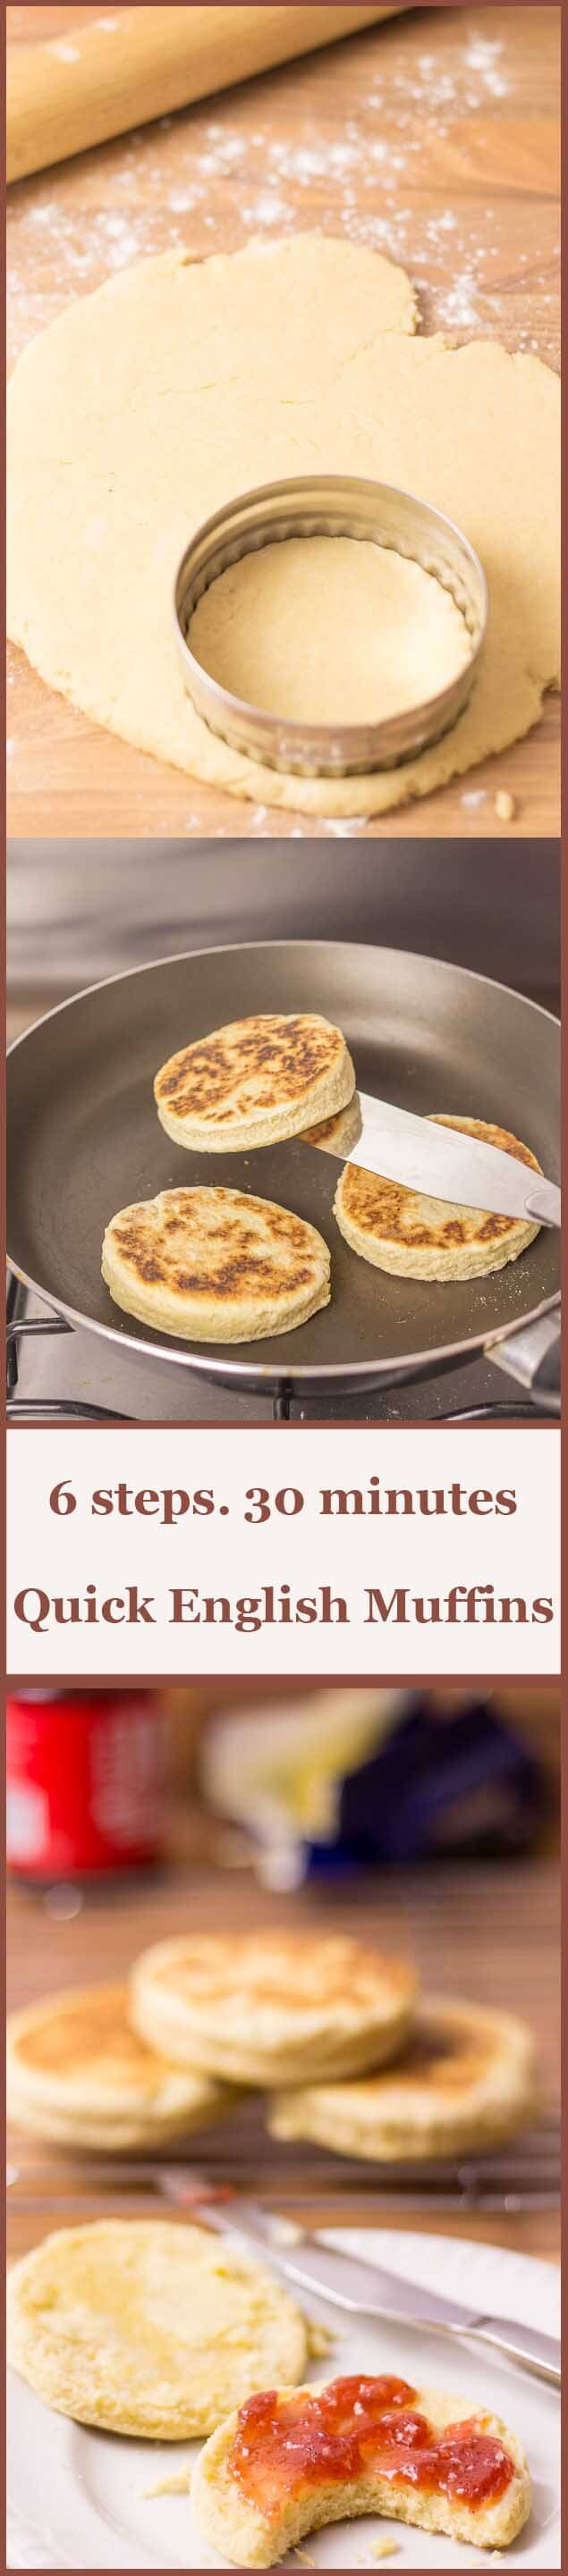 Just 6 ingredients and 6 steps and you'll have these super tasty quick English muffins ready to smother in your favourite toppings in just over half an hour!